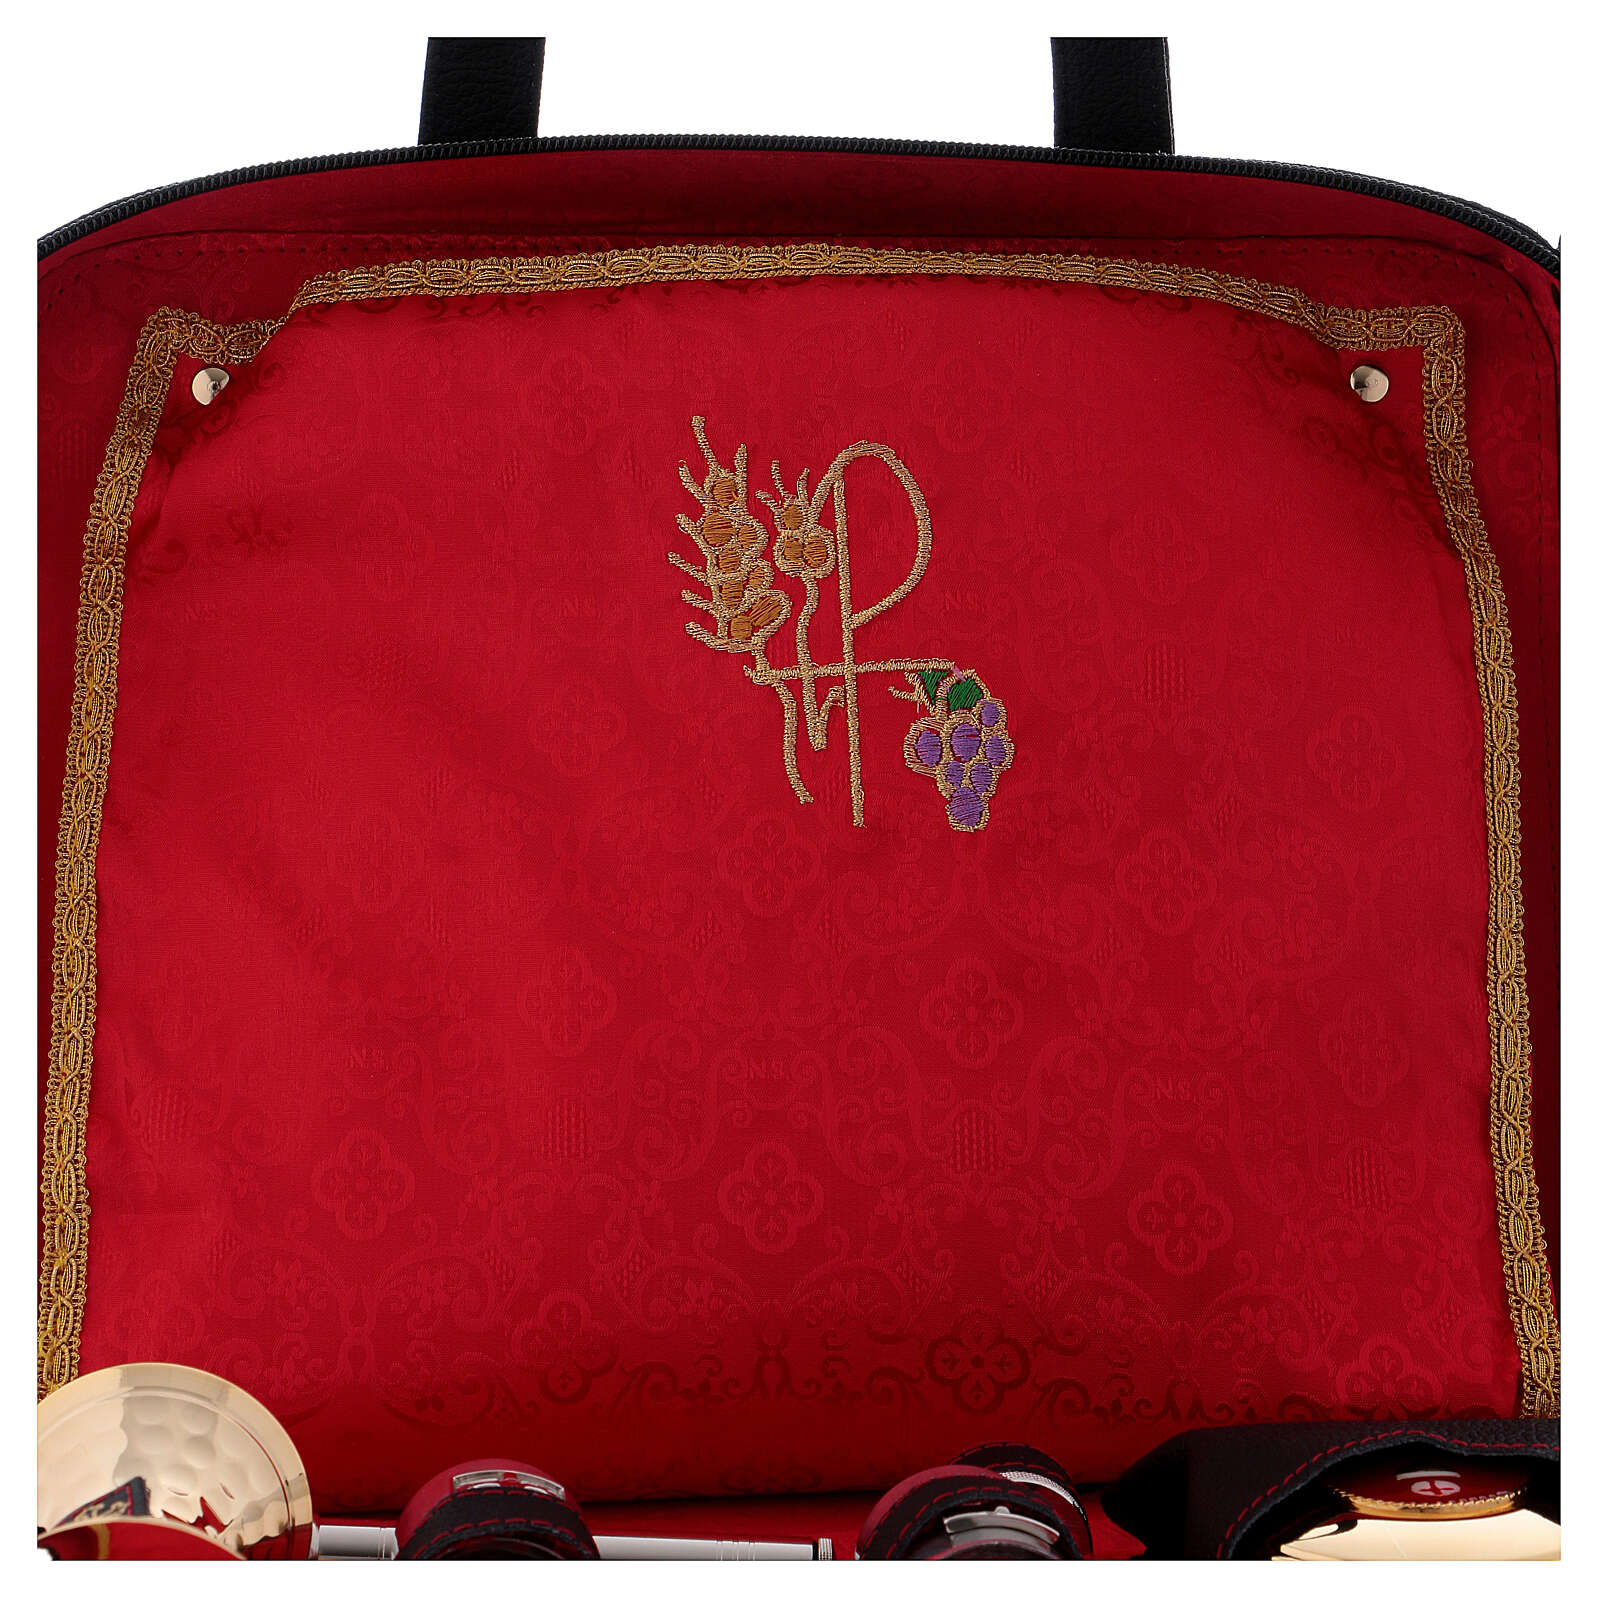 Leather bag with red satin lining and mass kit 3